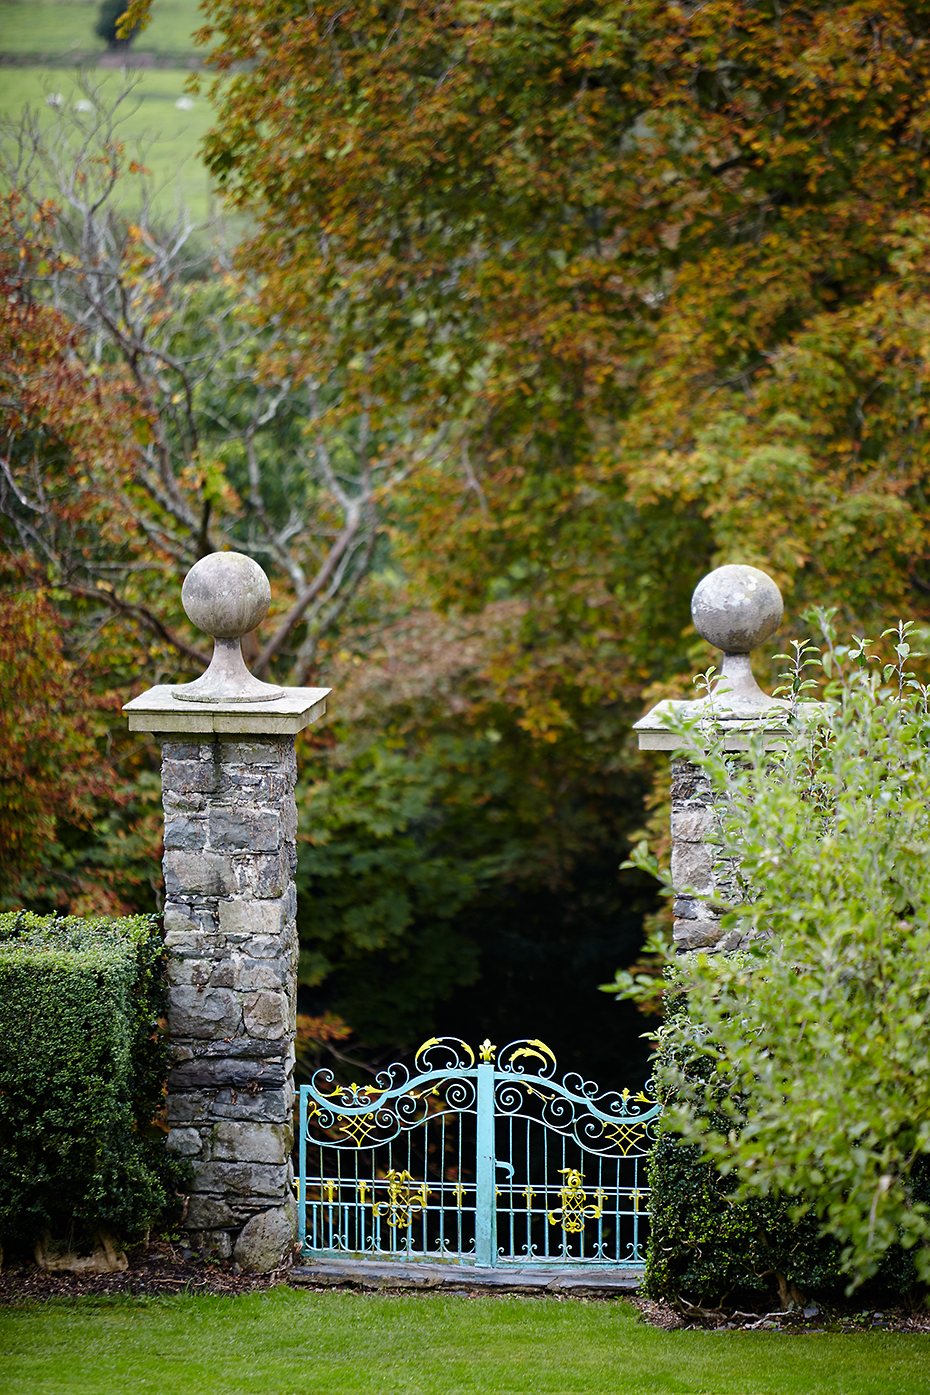 Stacey Van Berkel Photography I Ornate Turquoise Gate I Brodnaw, Wales